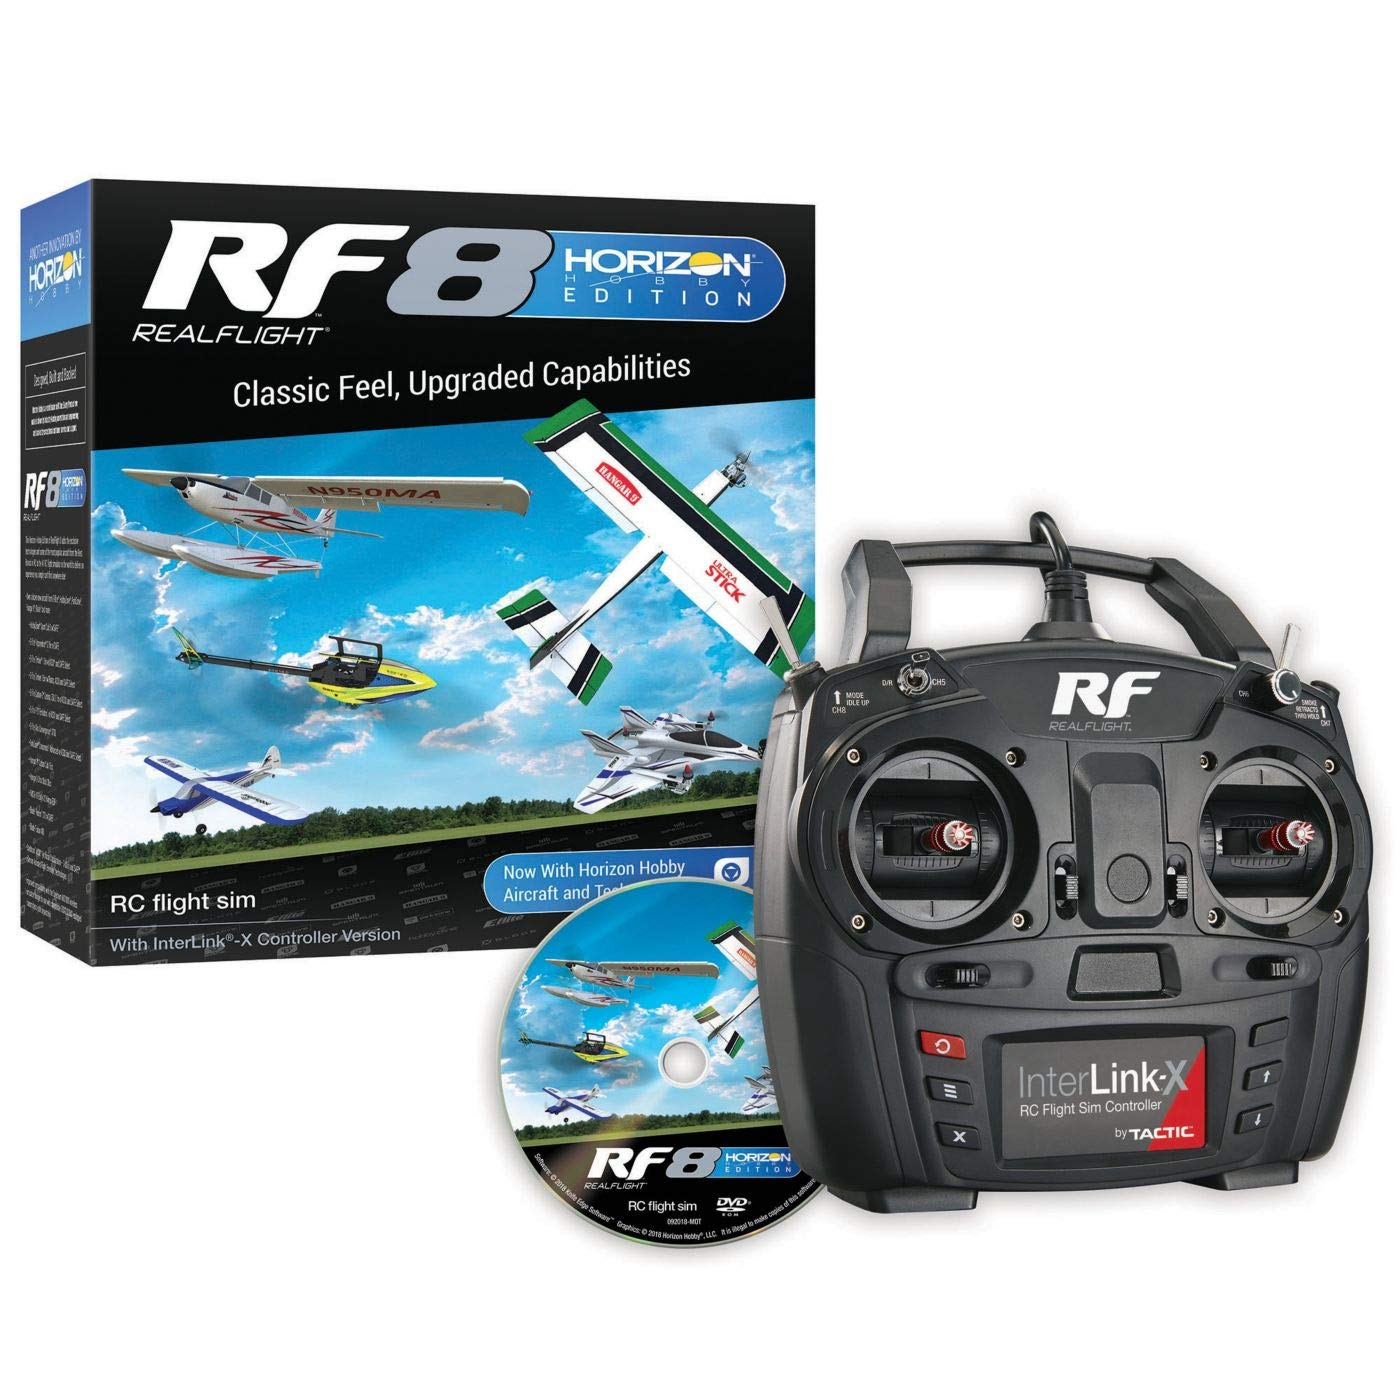 RealFlight RF8 Horizon Hobby Edition with Interlink-X Controller, RFL1000 by RealFlight (Image #1)